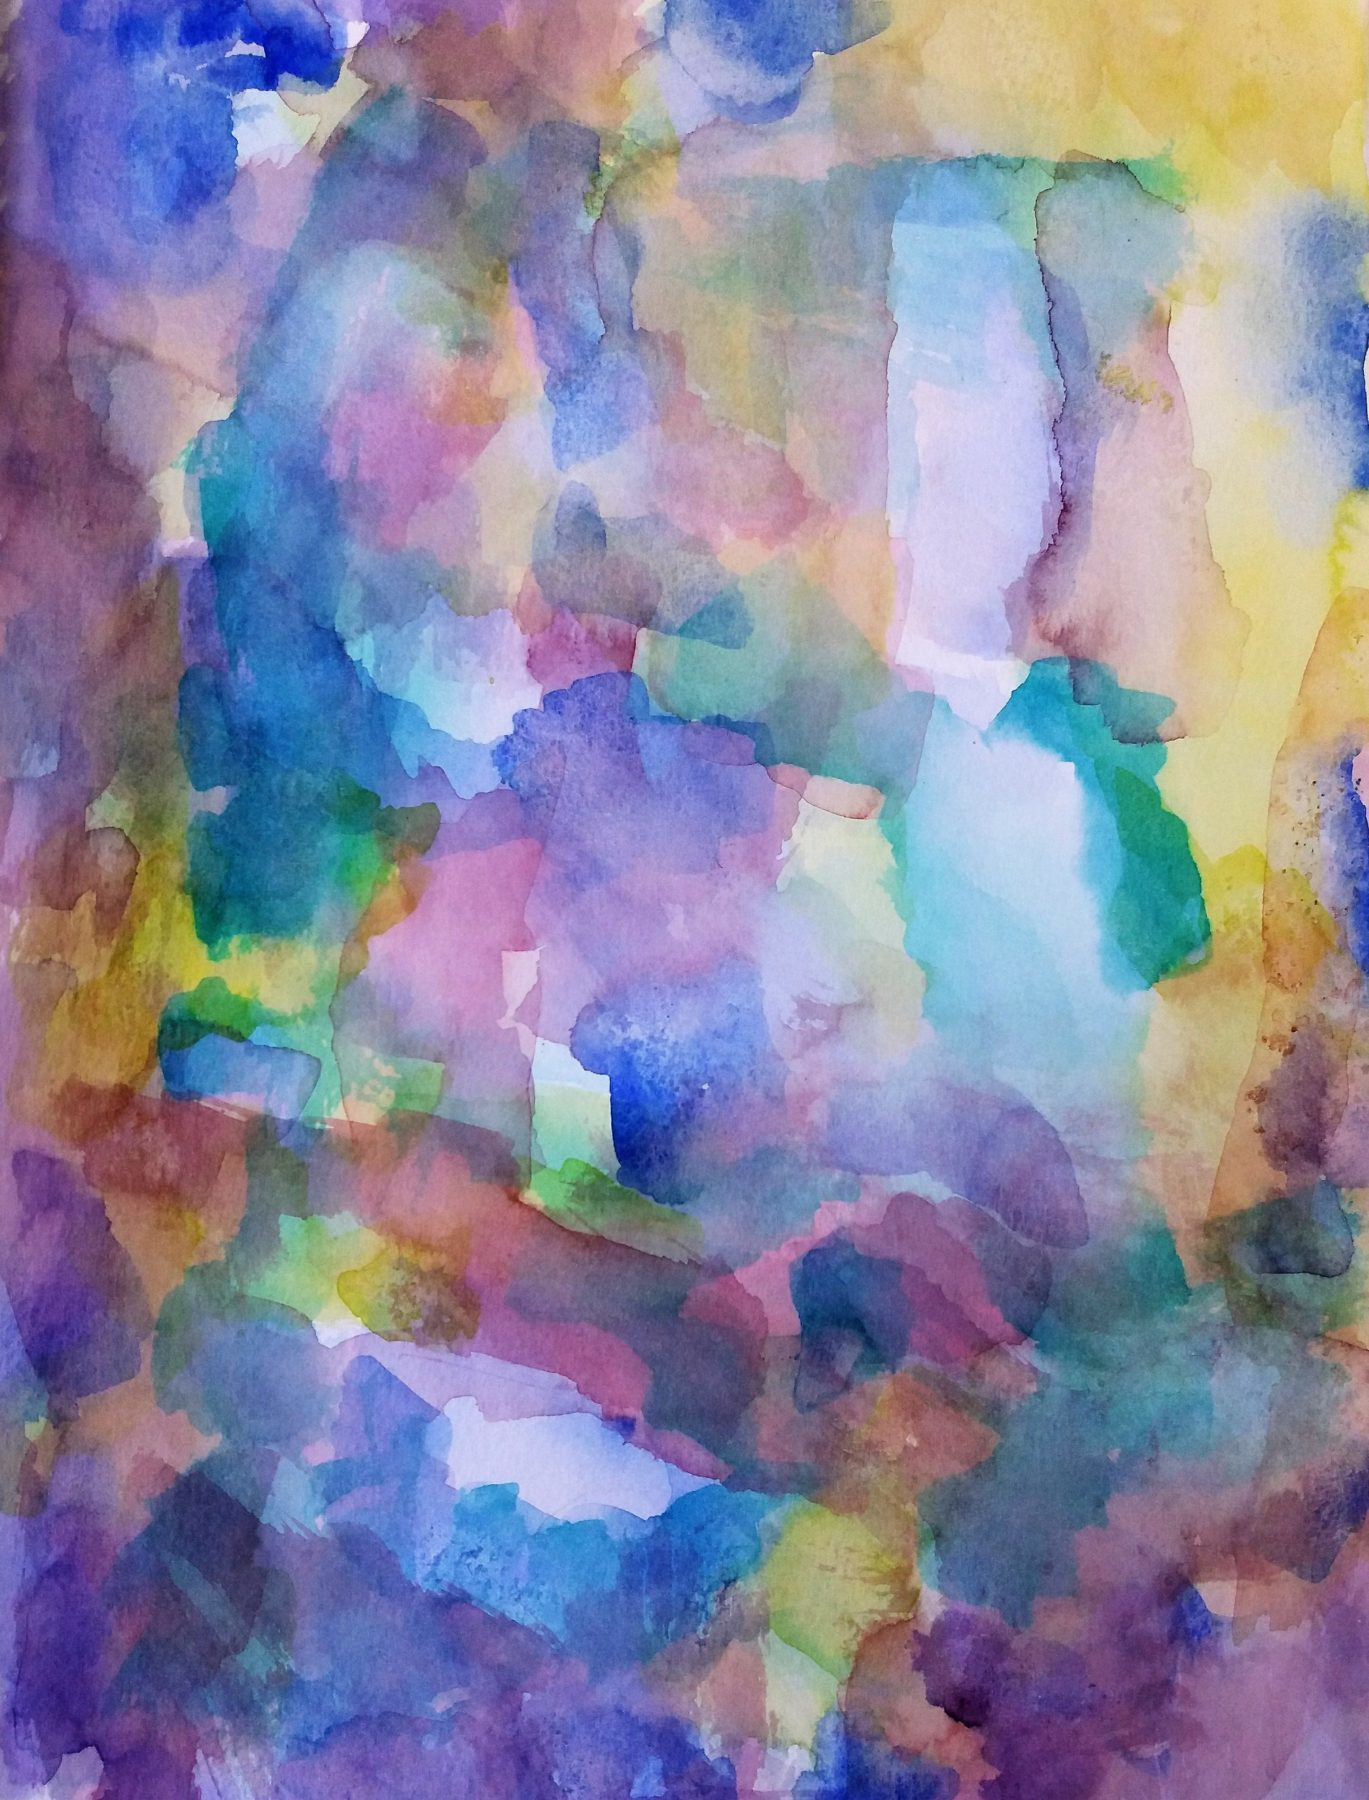 Abstract watercolors III